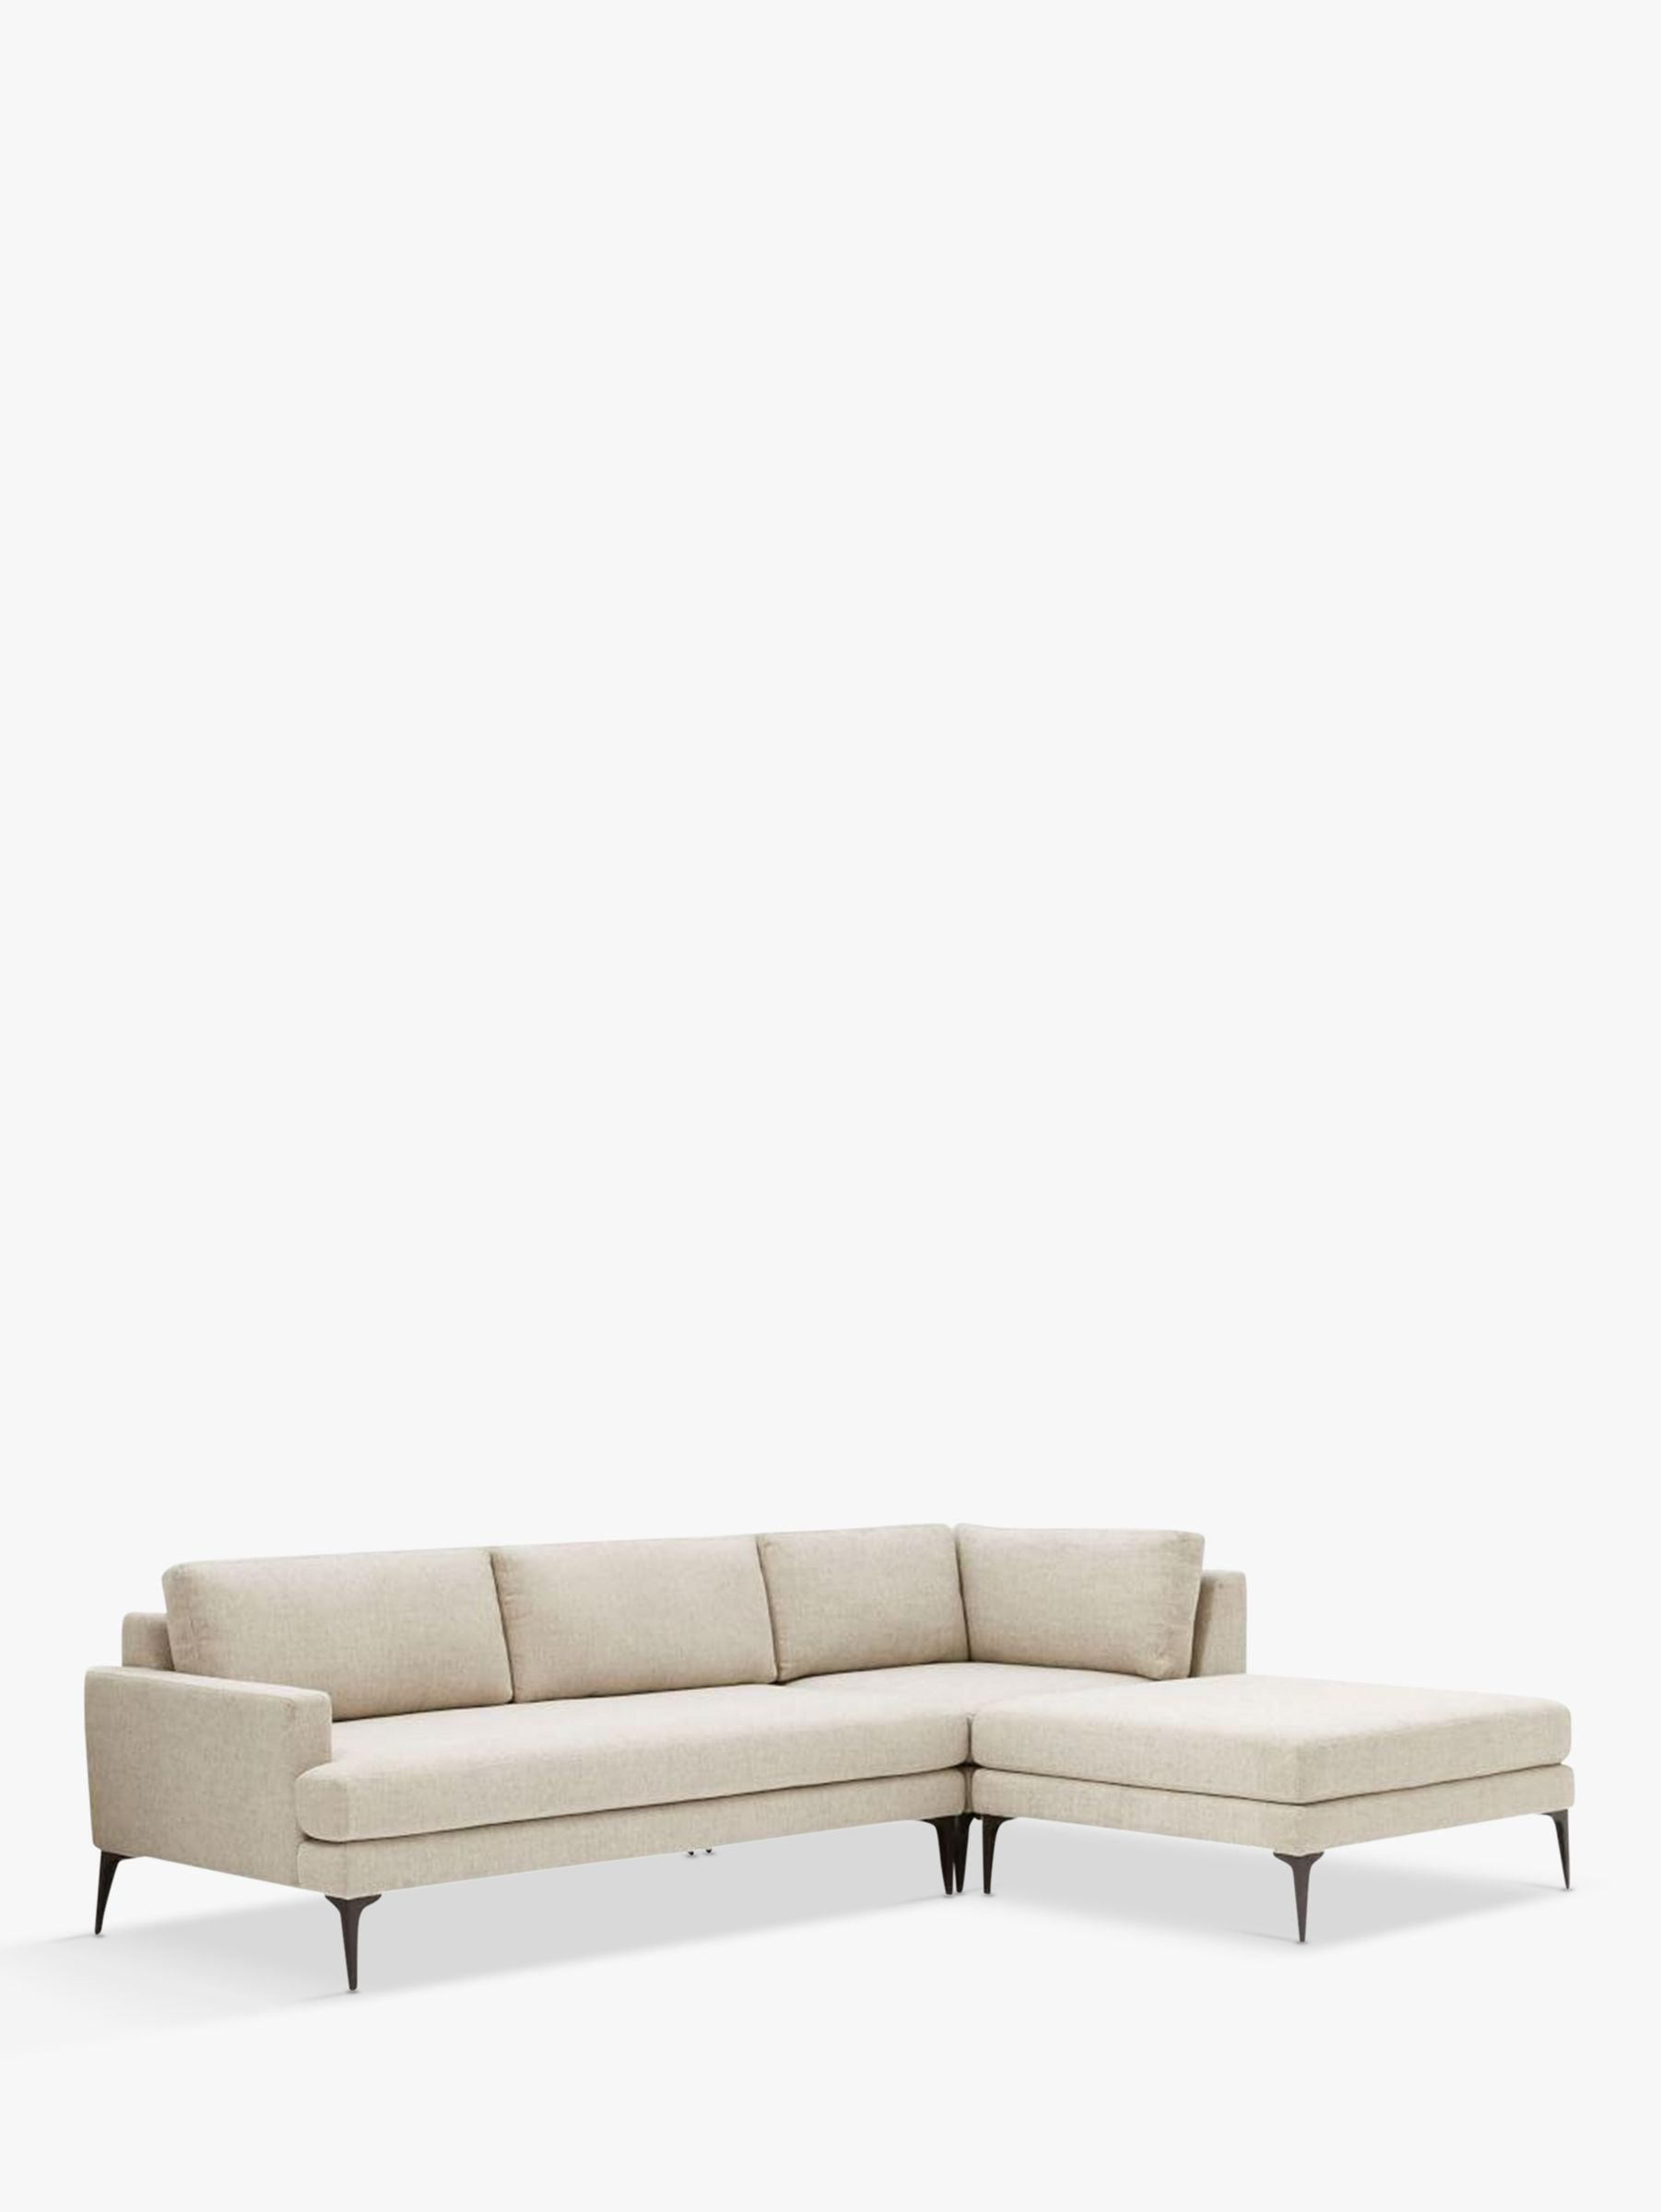 west elm Andes 5+ Seater RHF Sectional Sofa